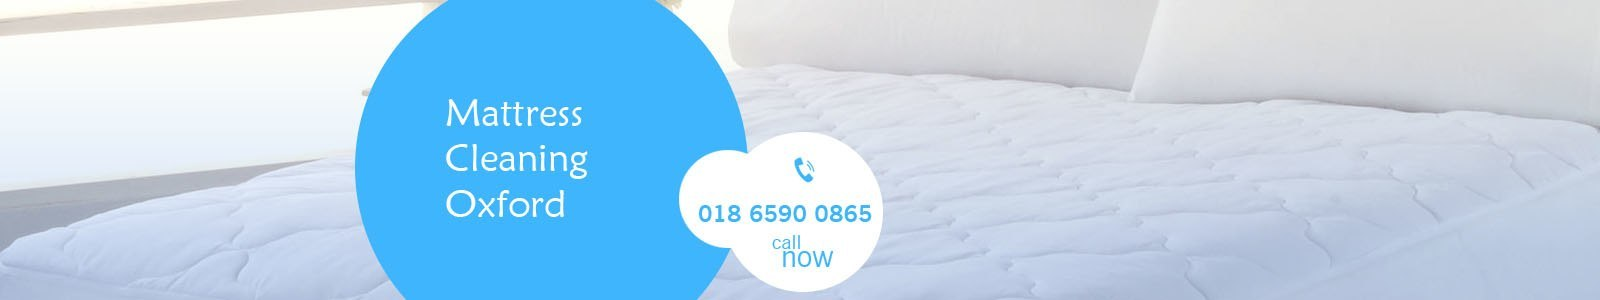 mattress-cleaning-oxford